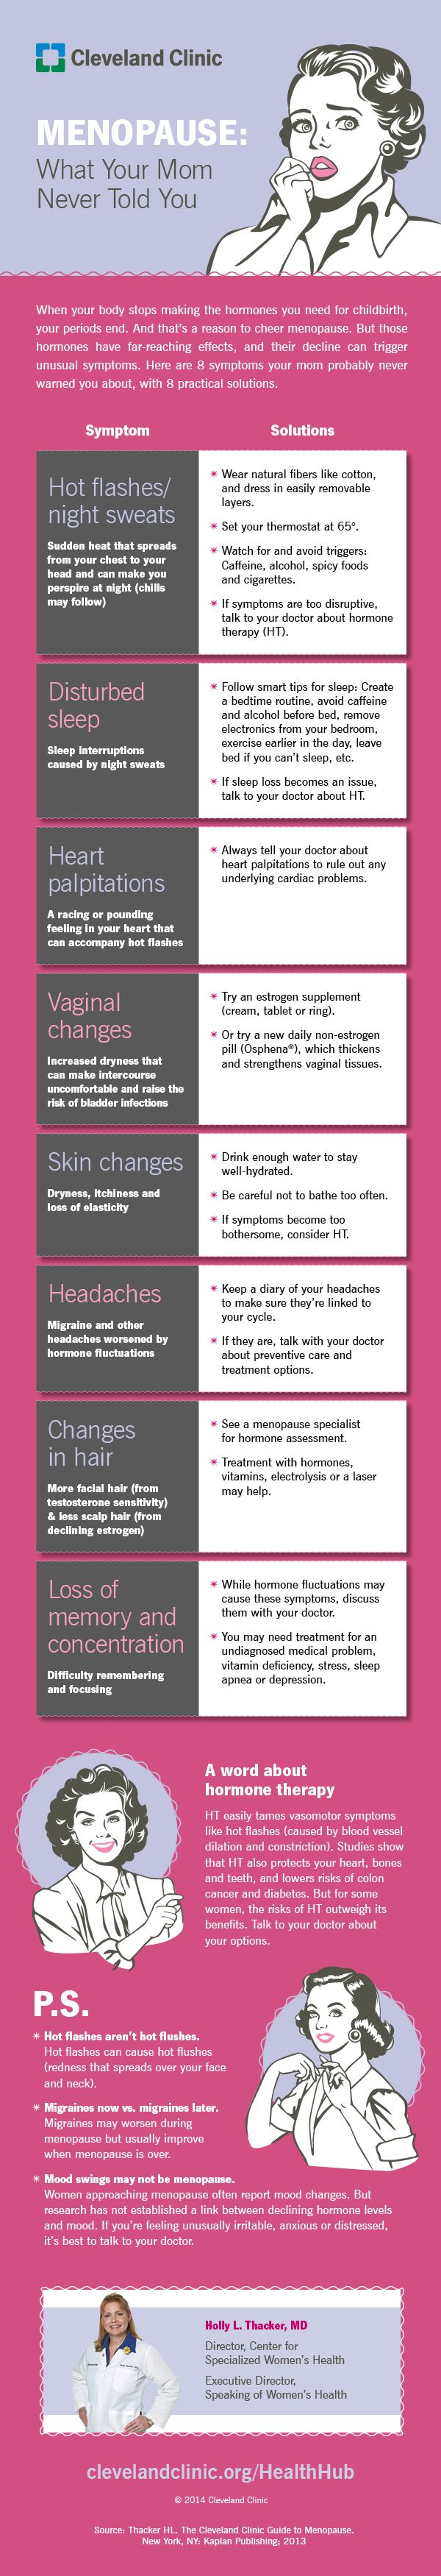 8 solutions to miserable #menopause symptoms you need to know. #infographic